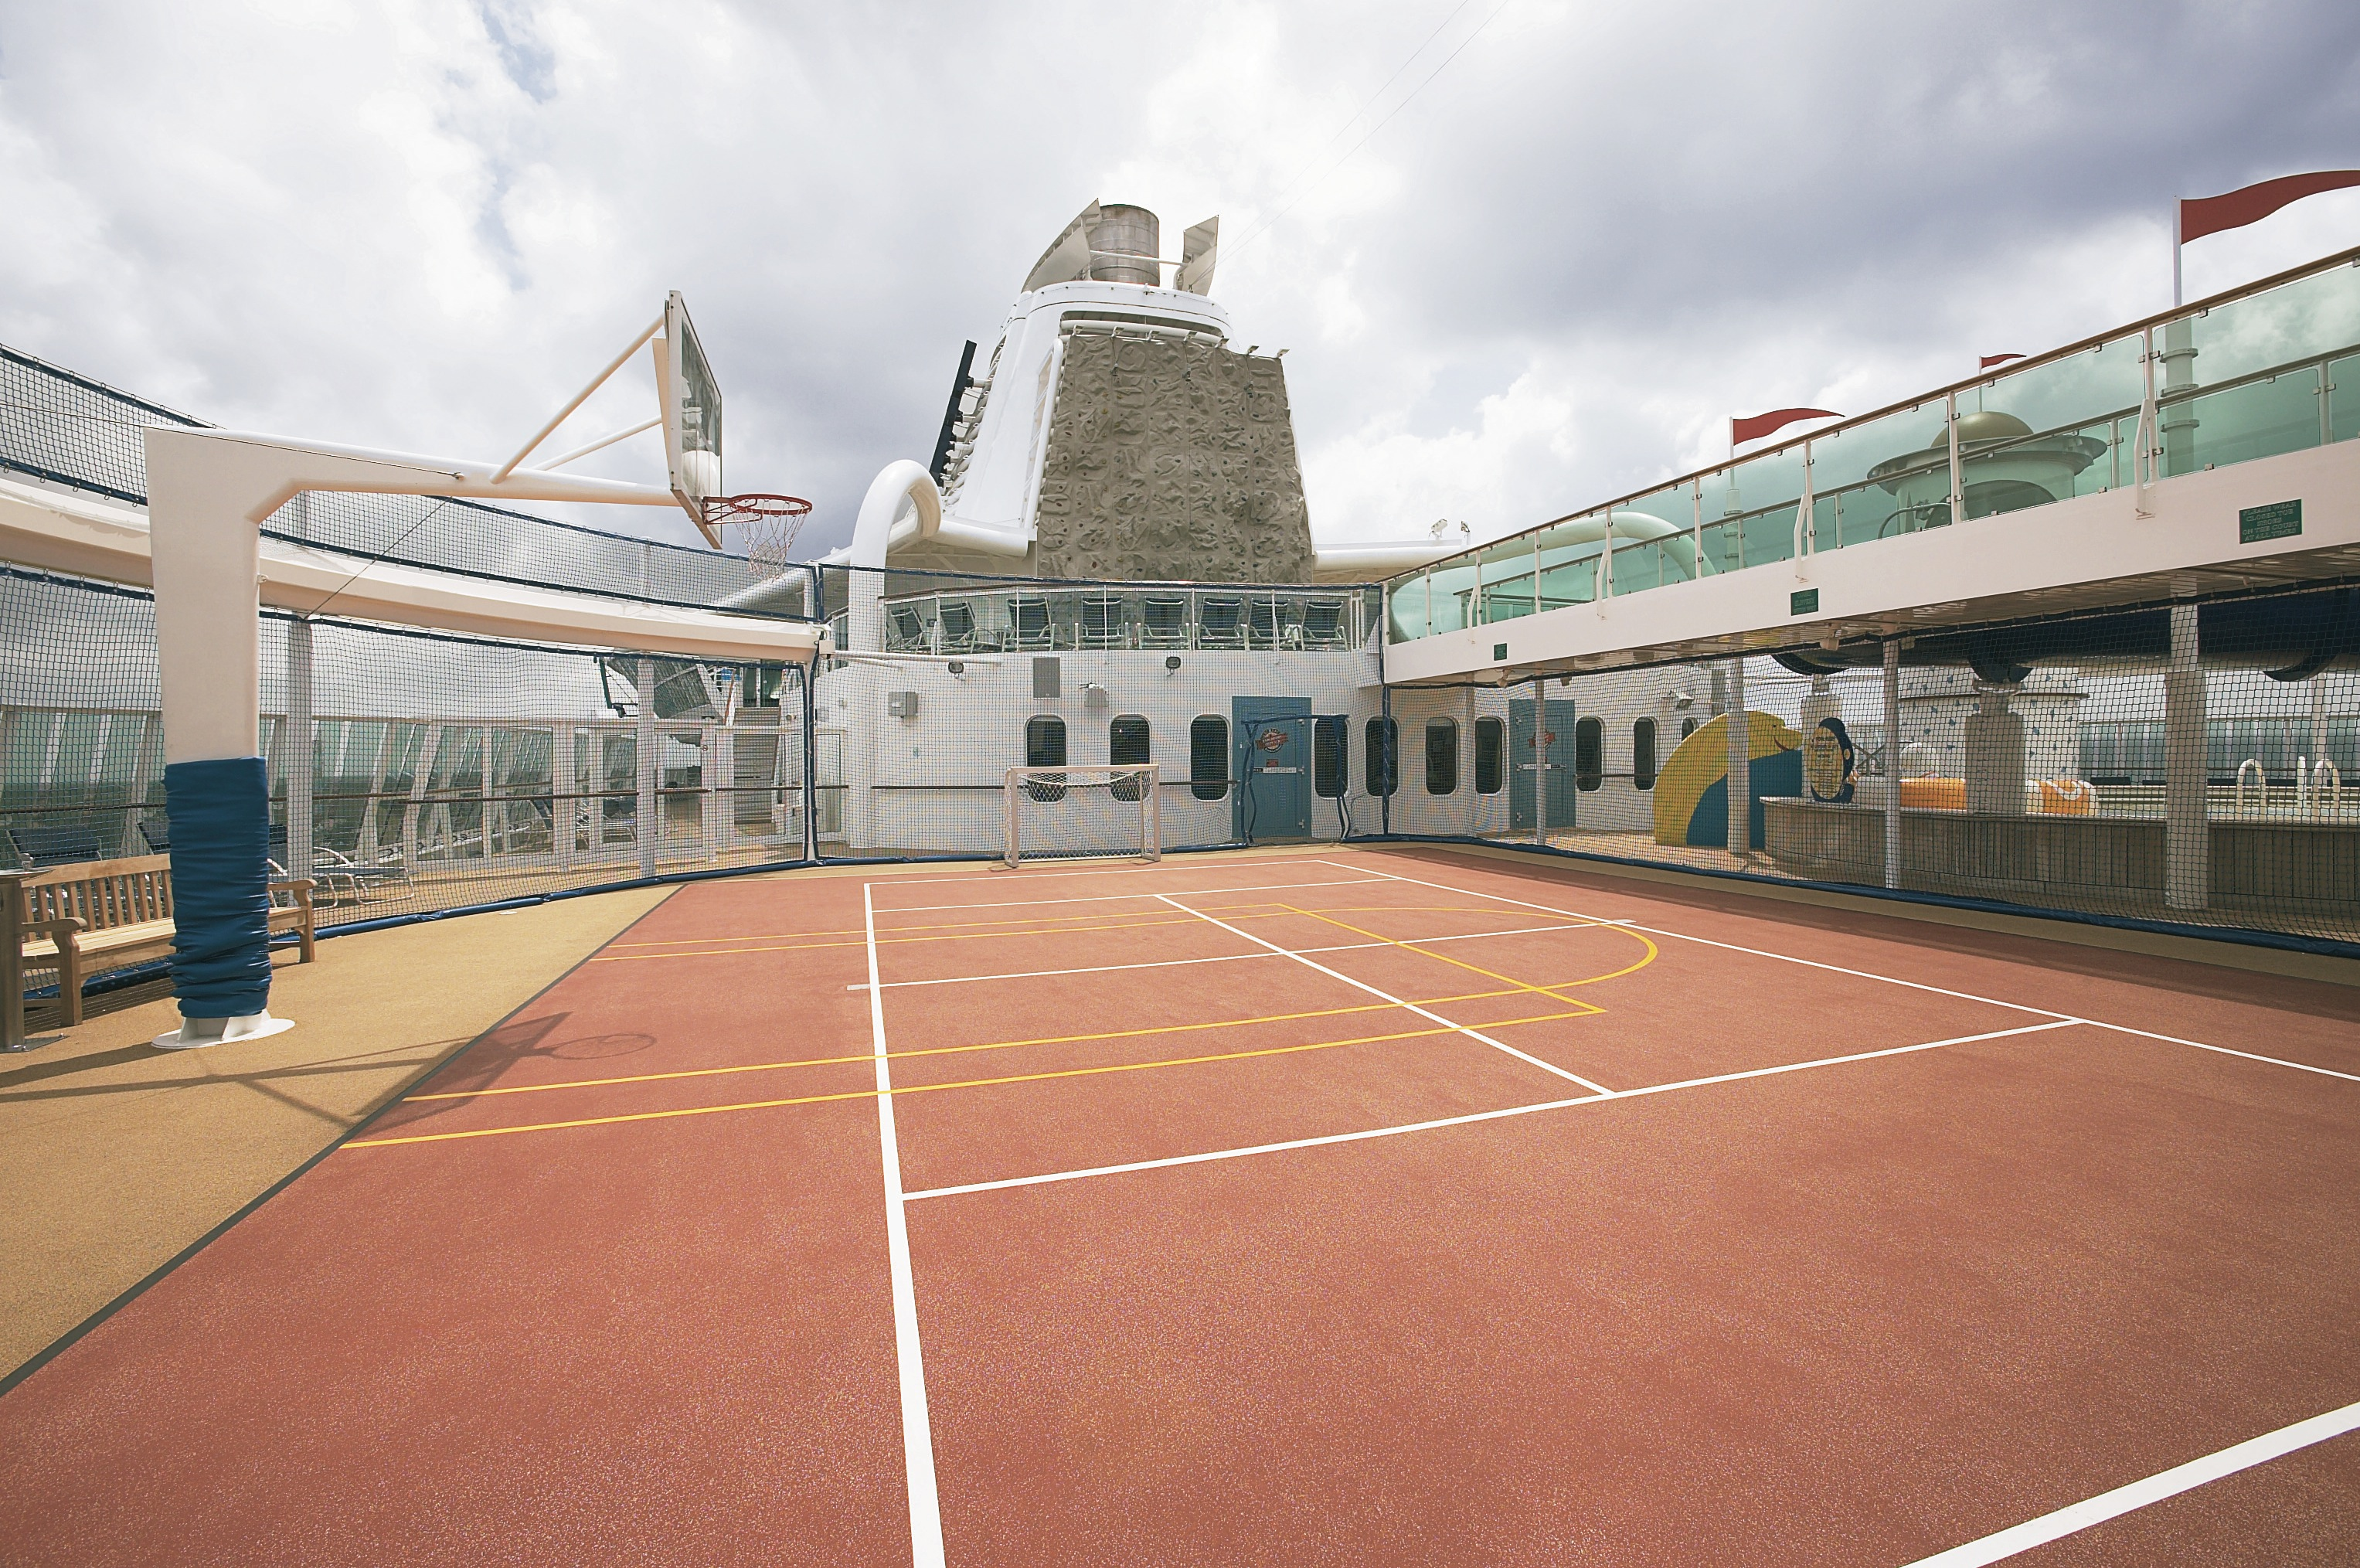 Royal Caribbean International Jewel of the Seas Exterior Sports Deck.jpeg